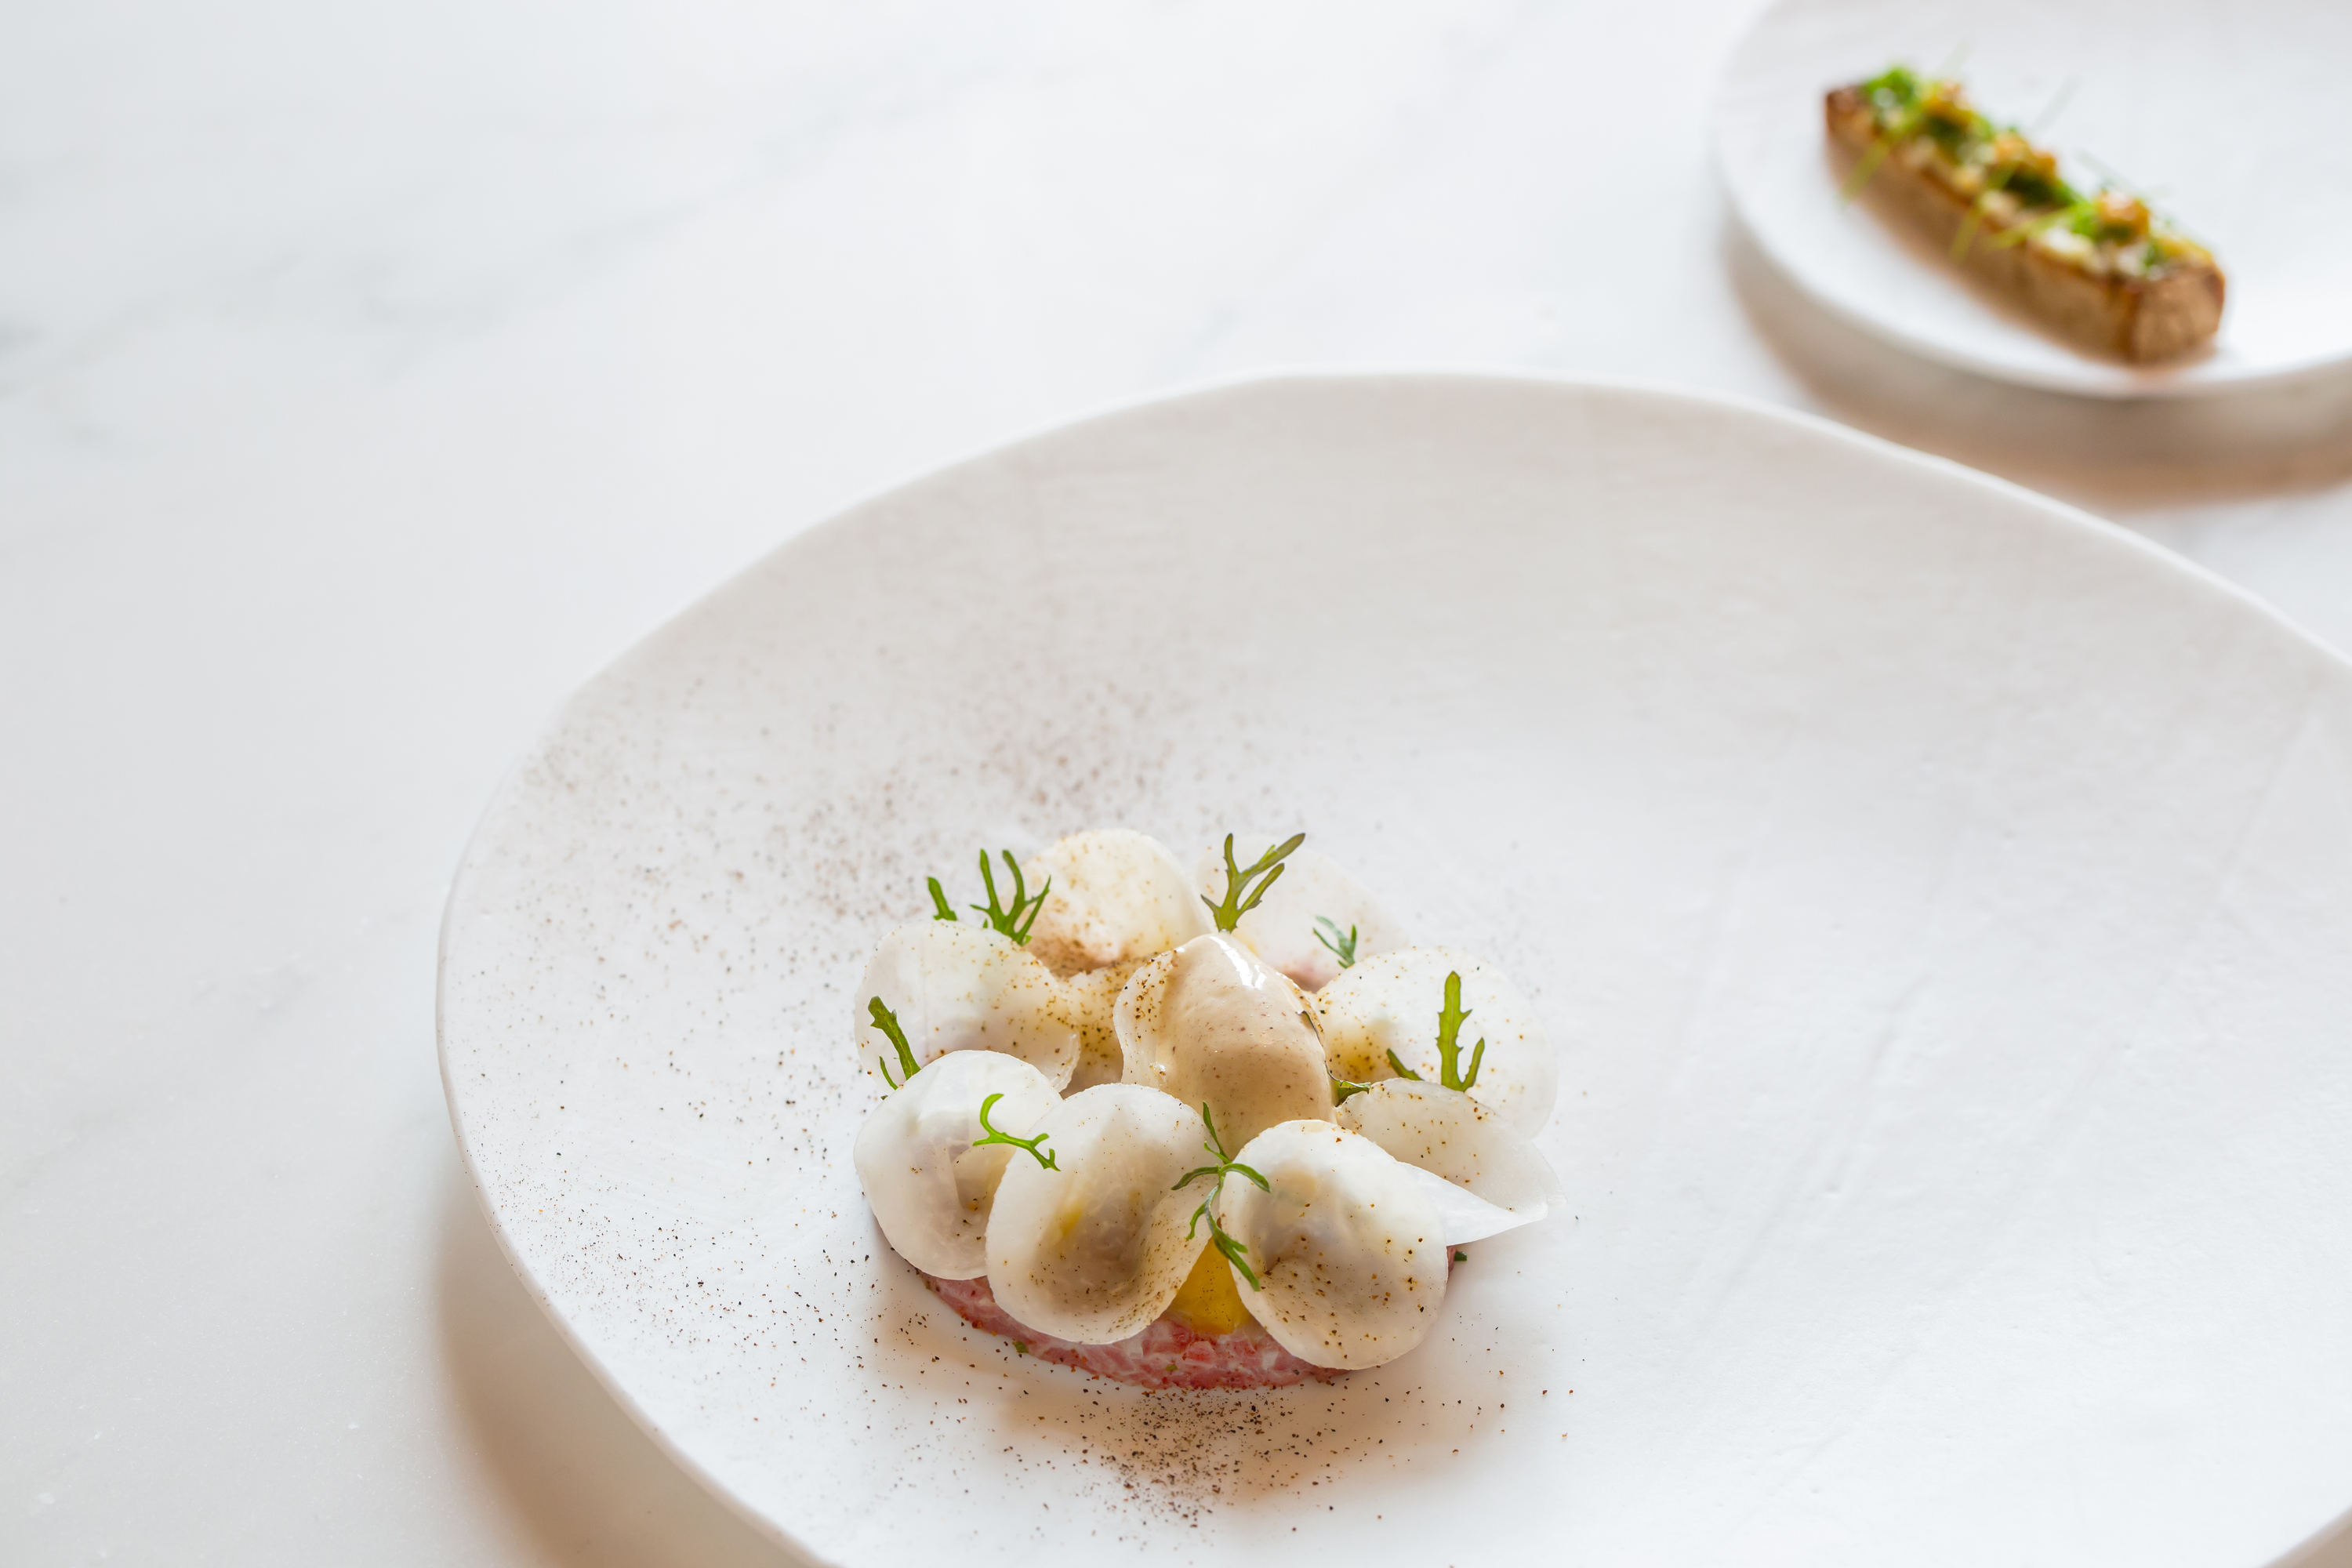 Michelin star restaurants in Singapore